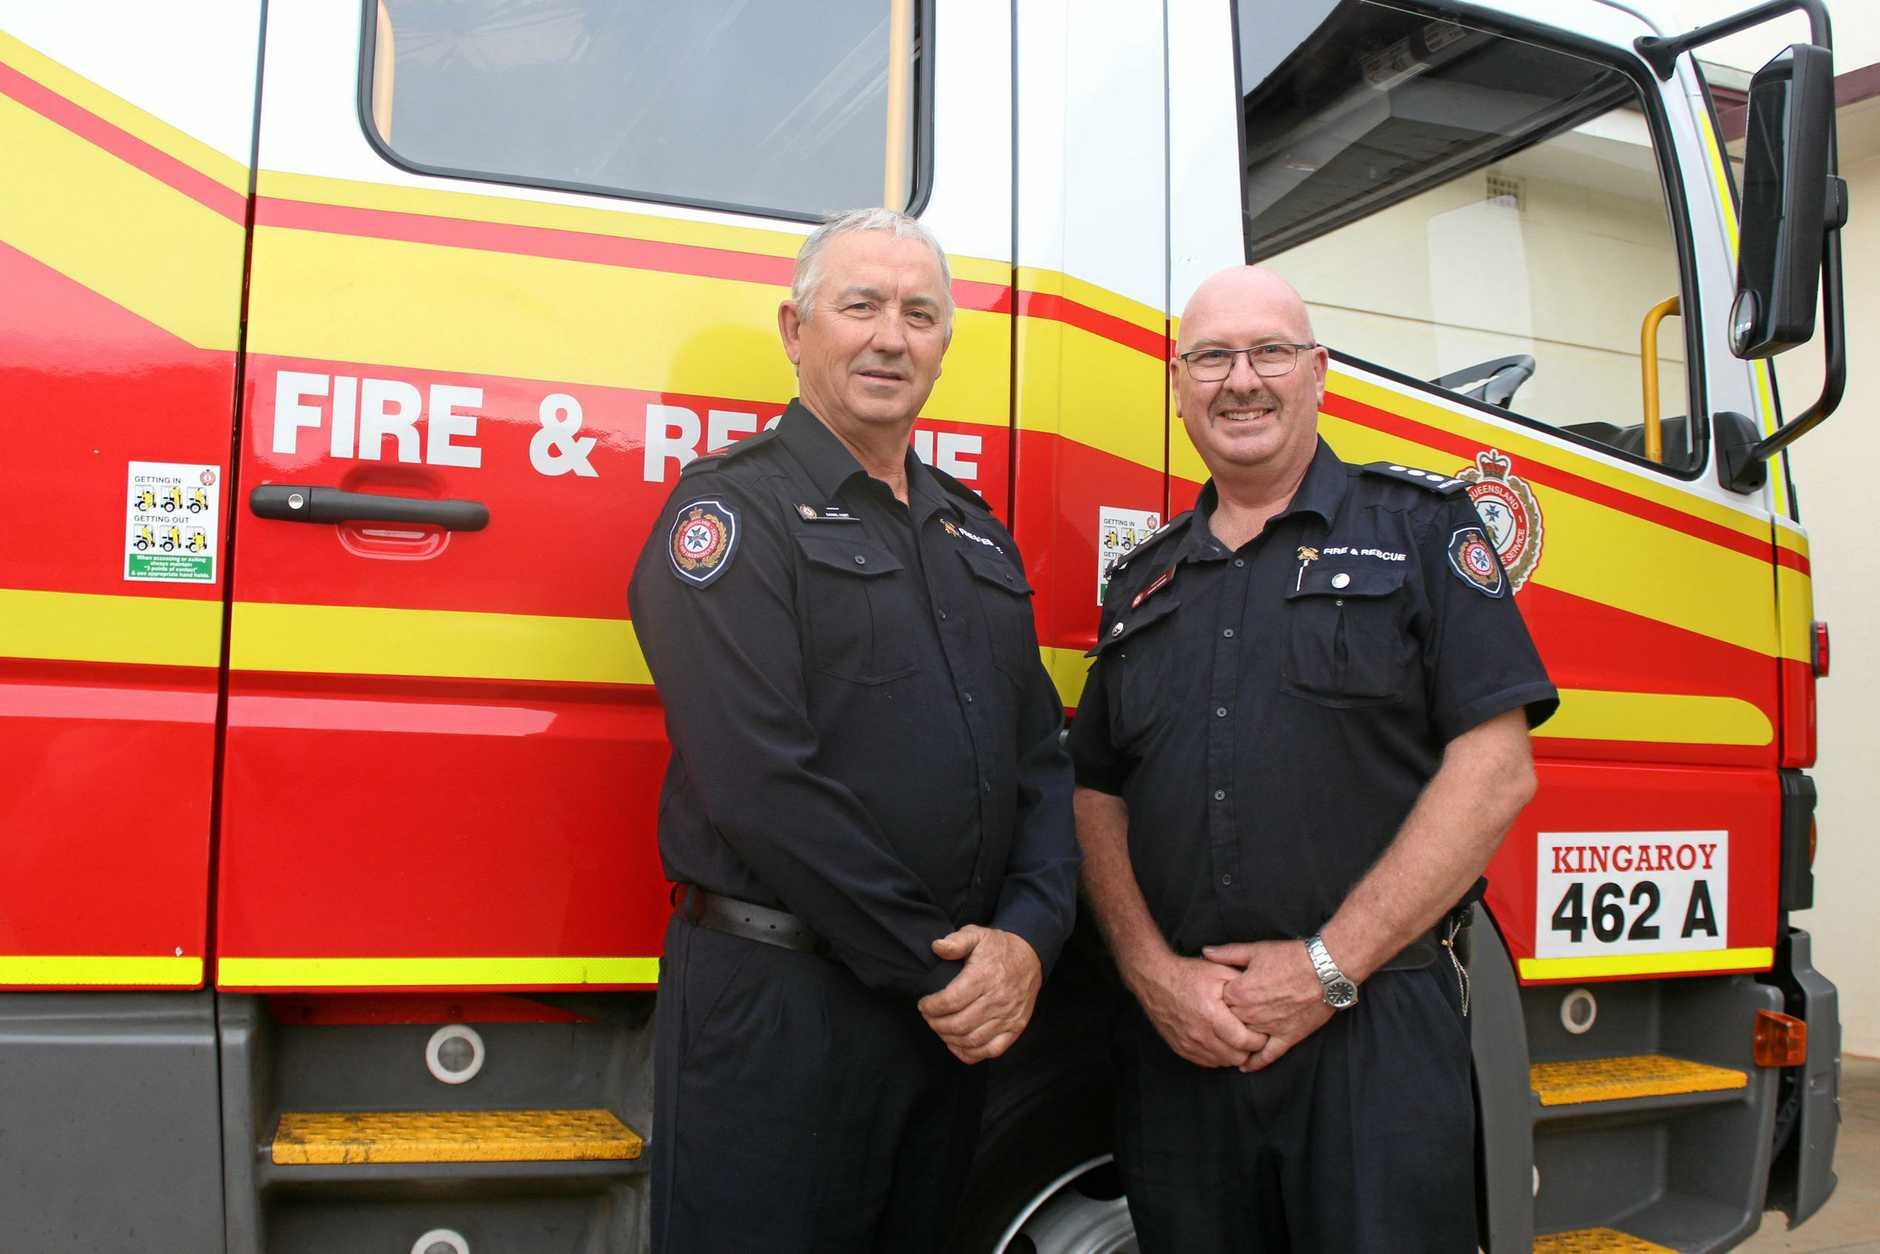 Kingaroy Fire and Rescue Servicemen Danny Hurt and Bruce Grower will be participating in the Postie Bike Ride next month.